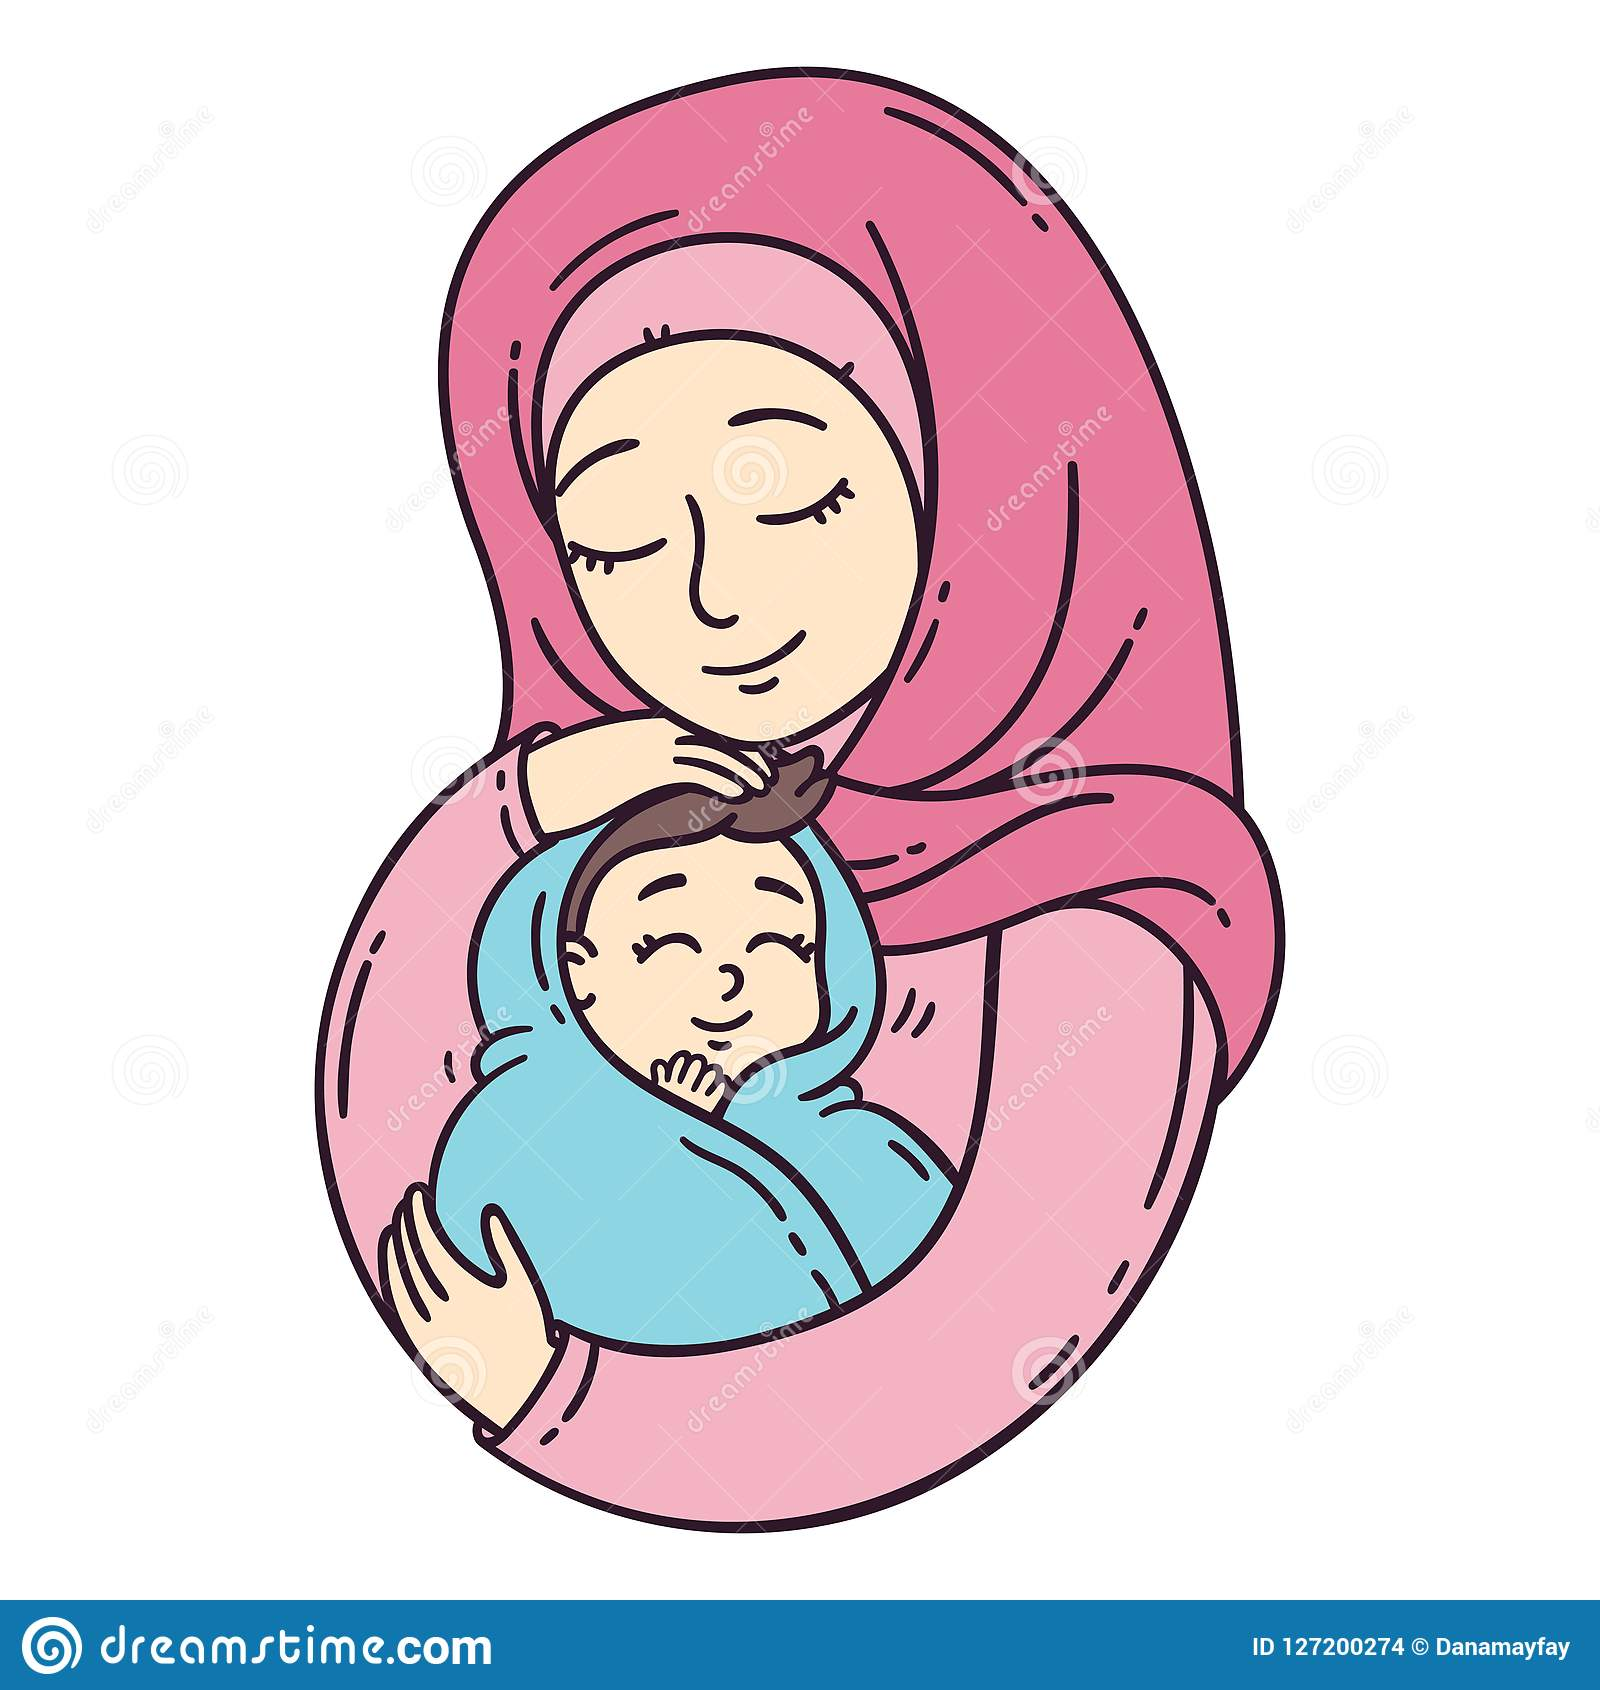 Muslim Mother Baby Stock Illustrations 440 Muslim Mother Baby Stock Illustrations Vectors Clipart Dreamstime